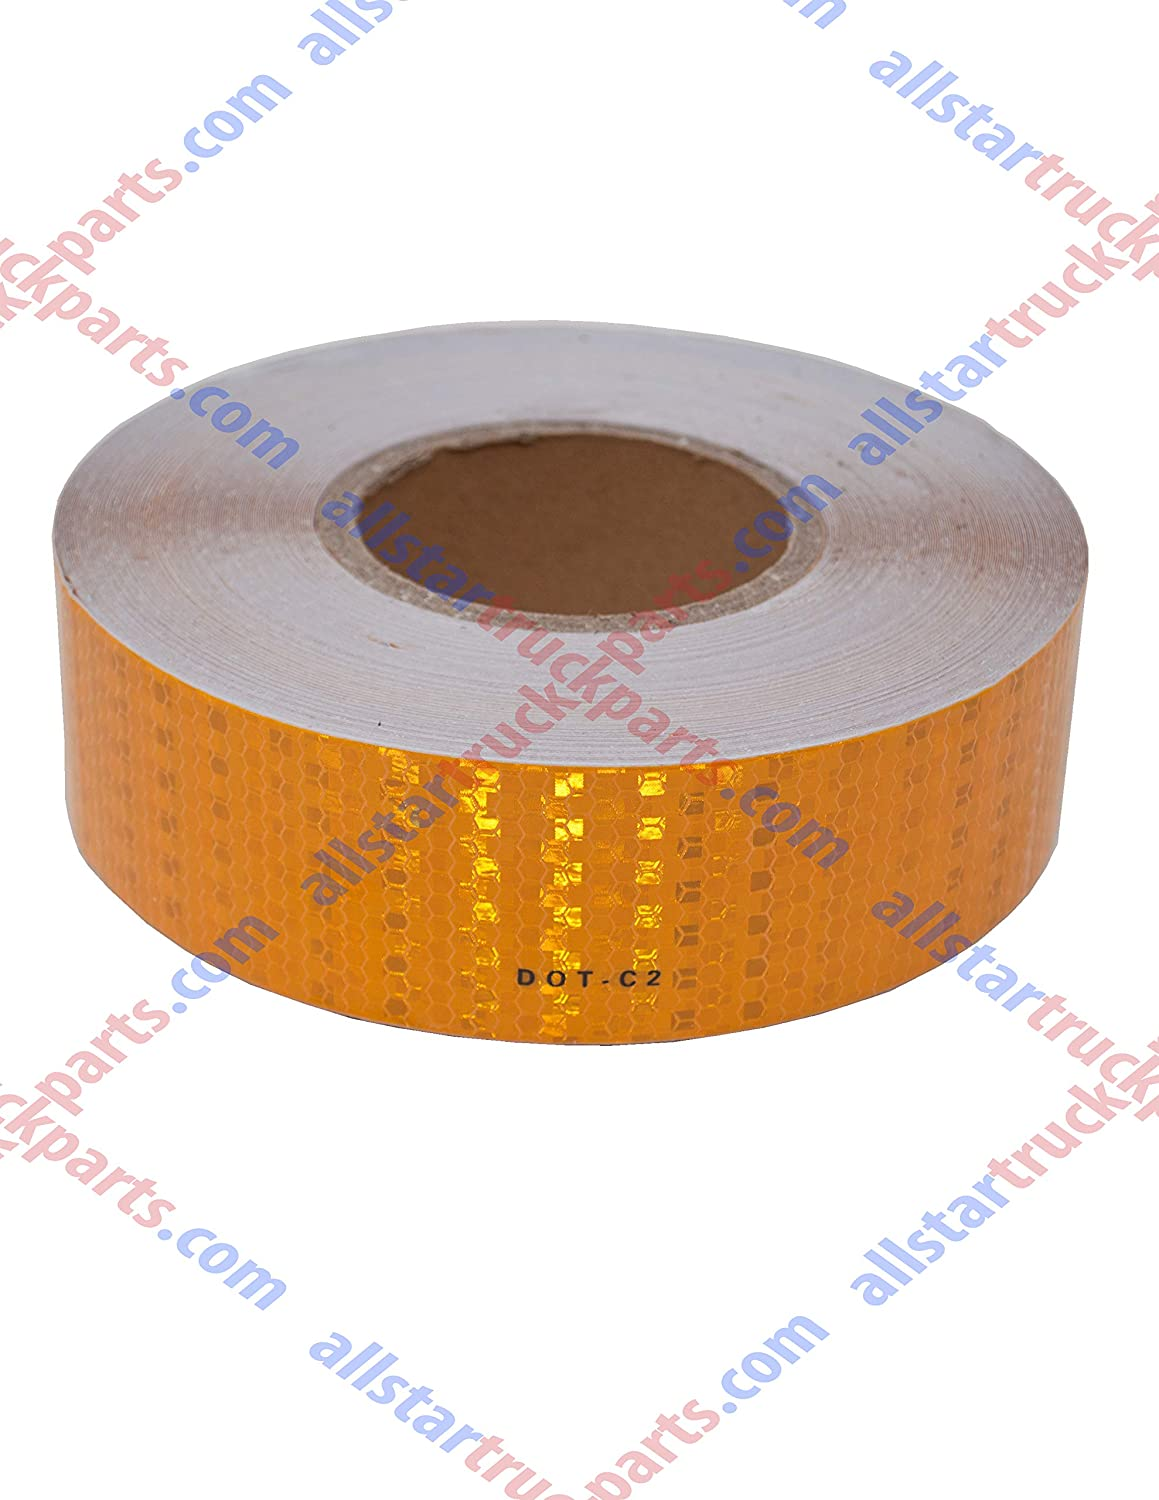 2x150 Floor Reflective Safety Warning Yellow//Black Caution Tape Honeycomb Design ALL STAR TRUCK PARTS